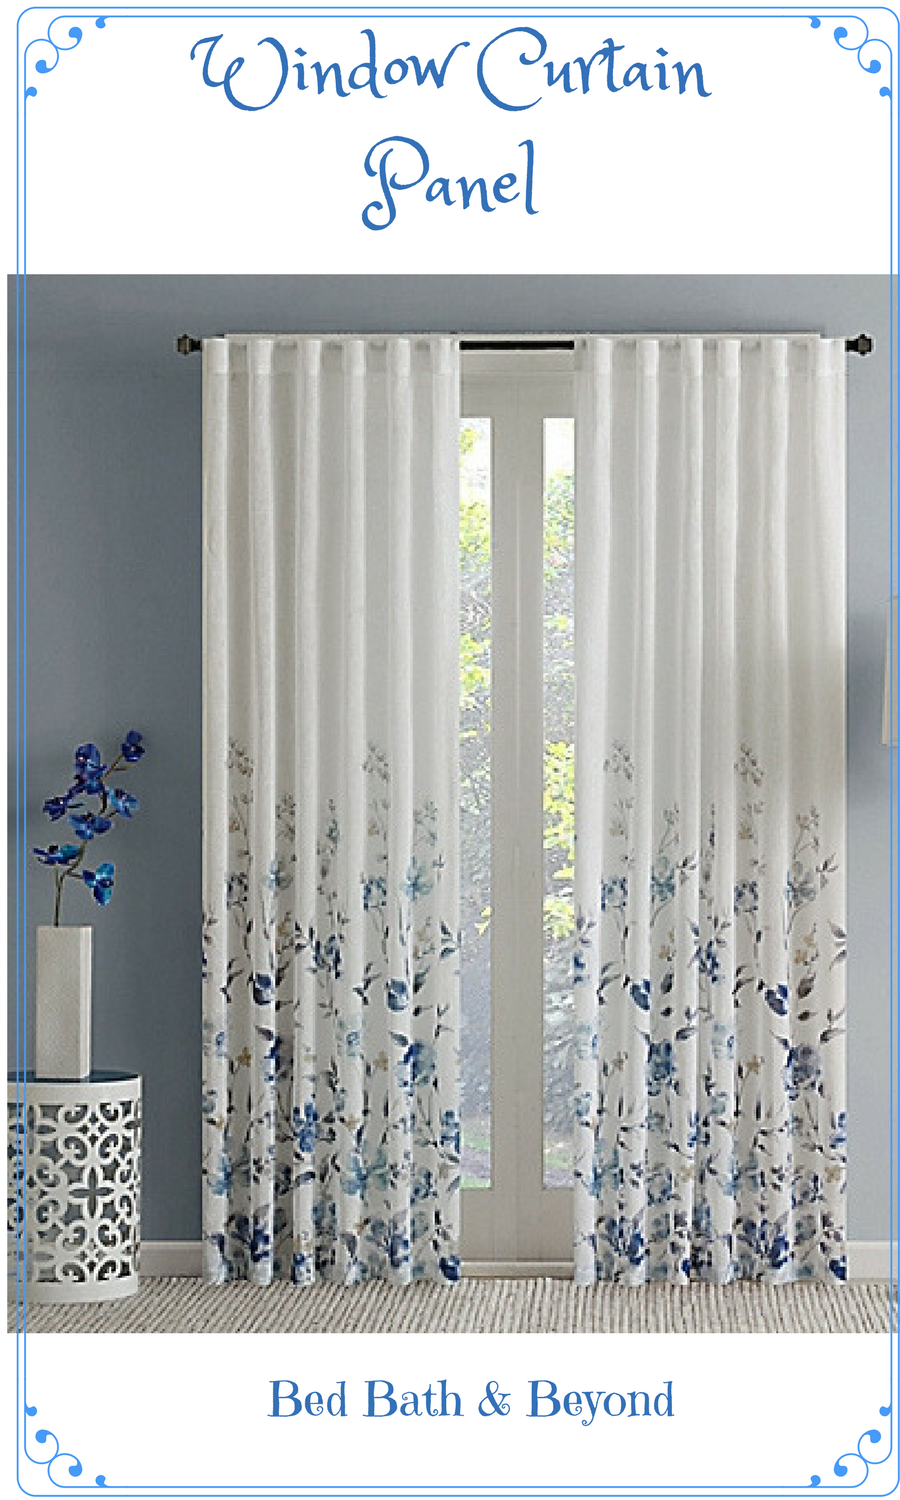 Bed bath and beyond window shades  window curtain panel ad curtain home decor  affiliate pins